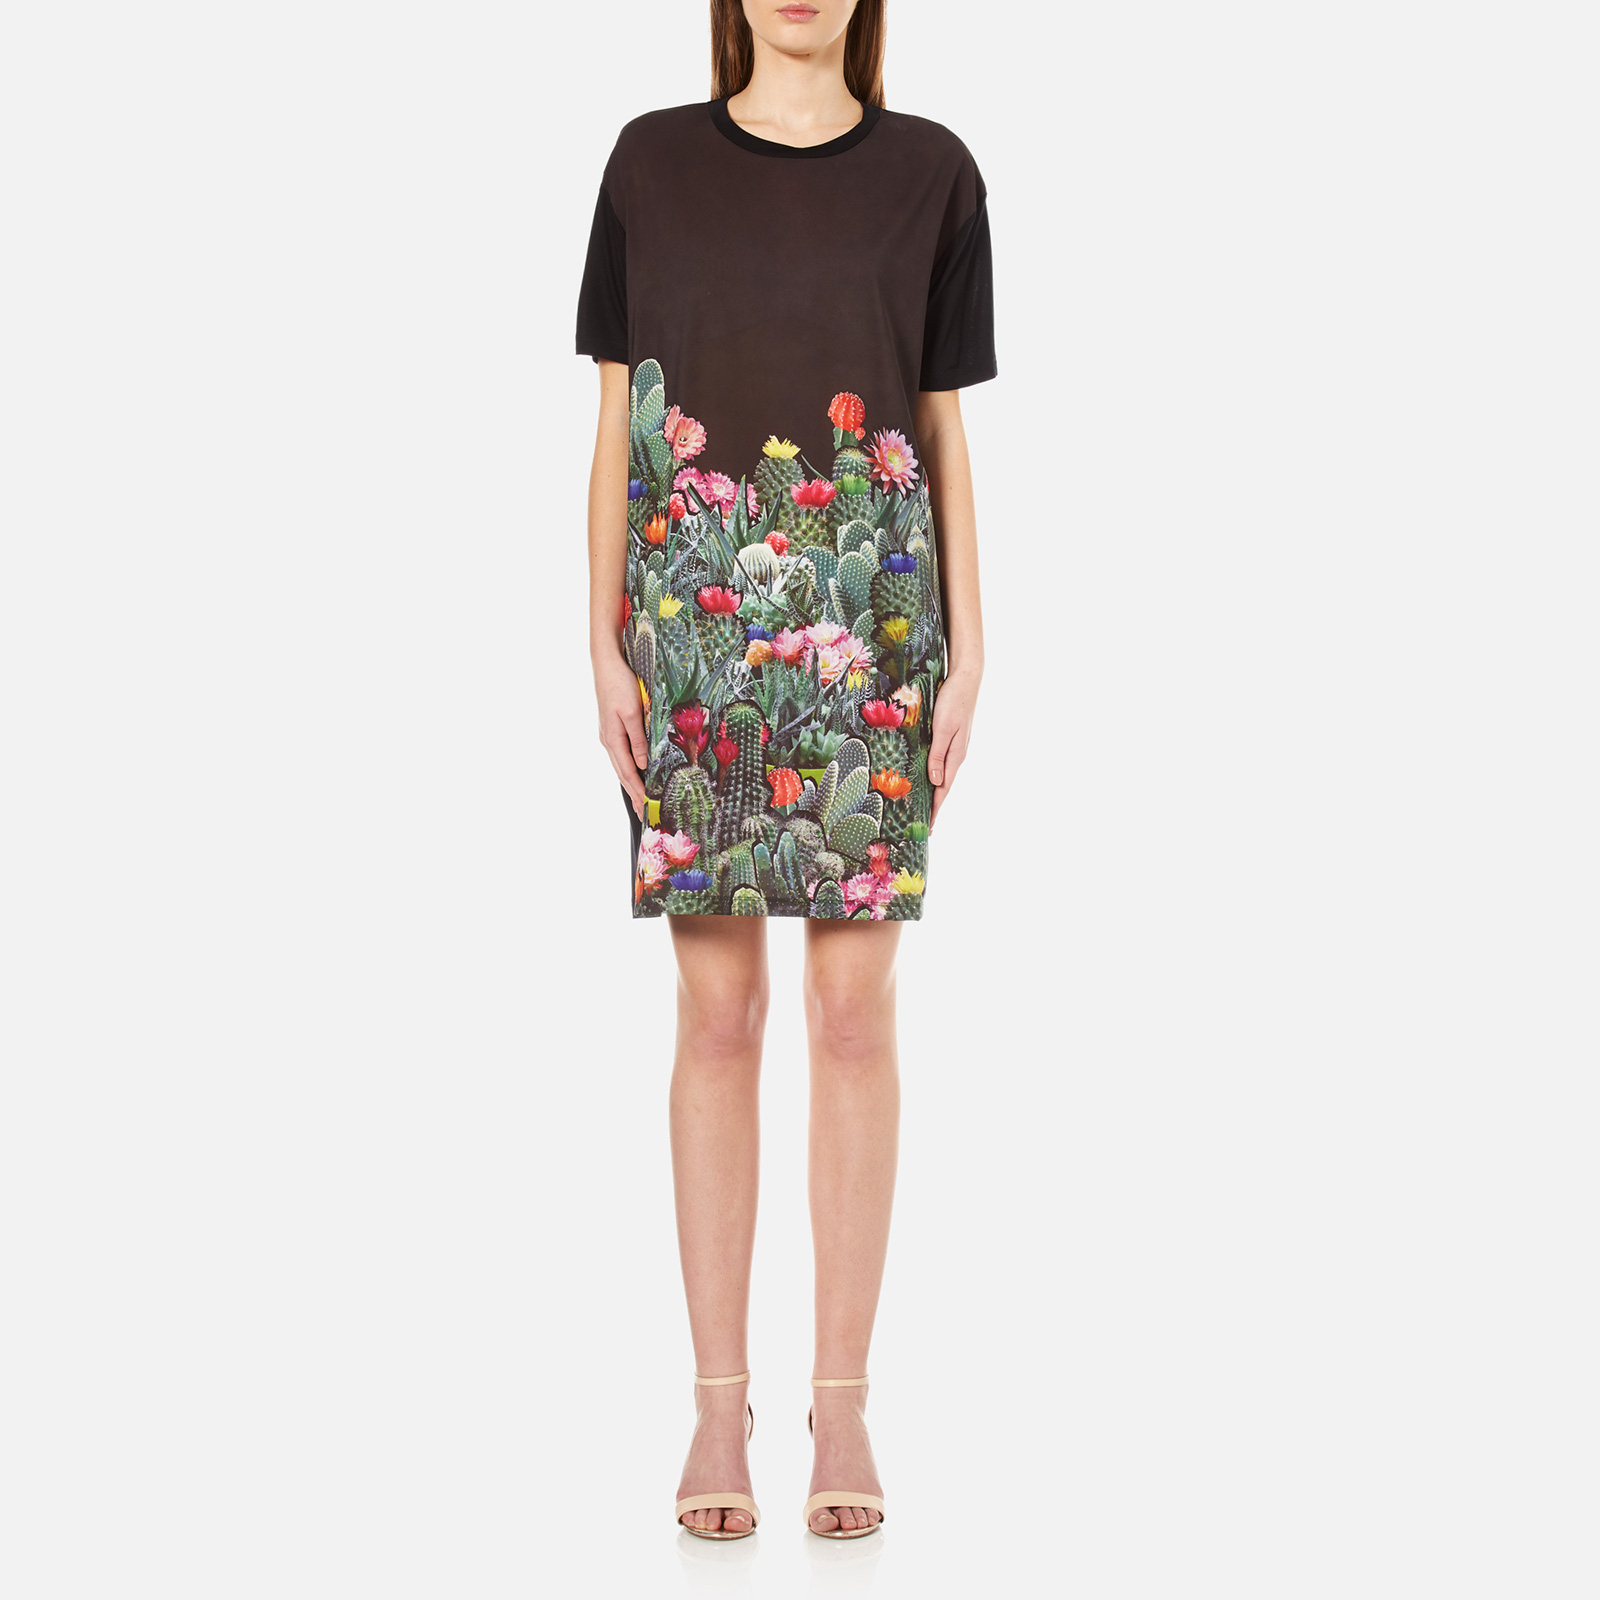 PS by Paul Smith Women s Cactus T-Shirt Dress - Black - Free UK Delivery  over £50 f06de9579